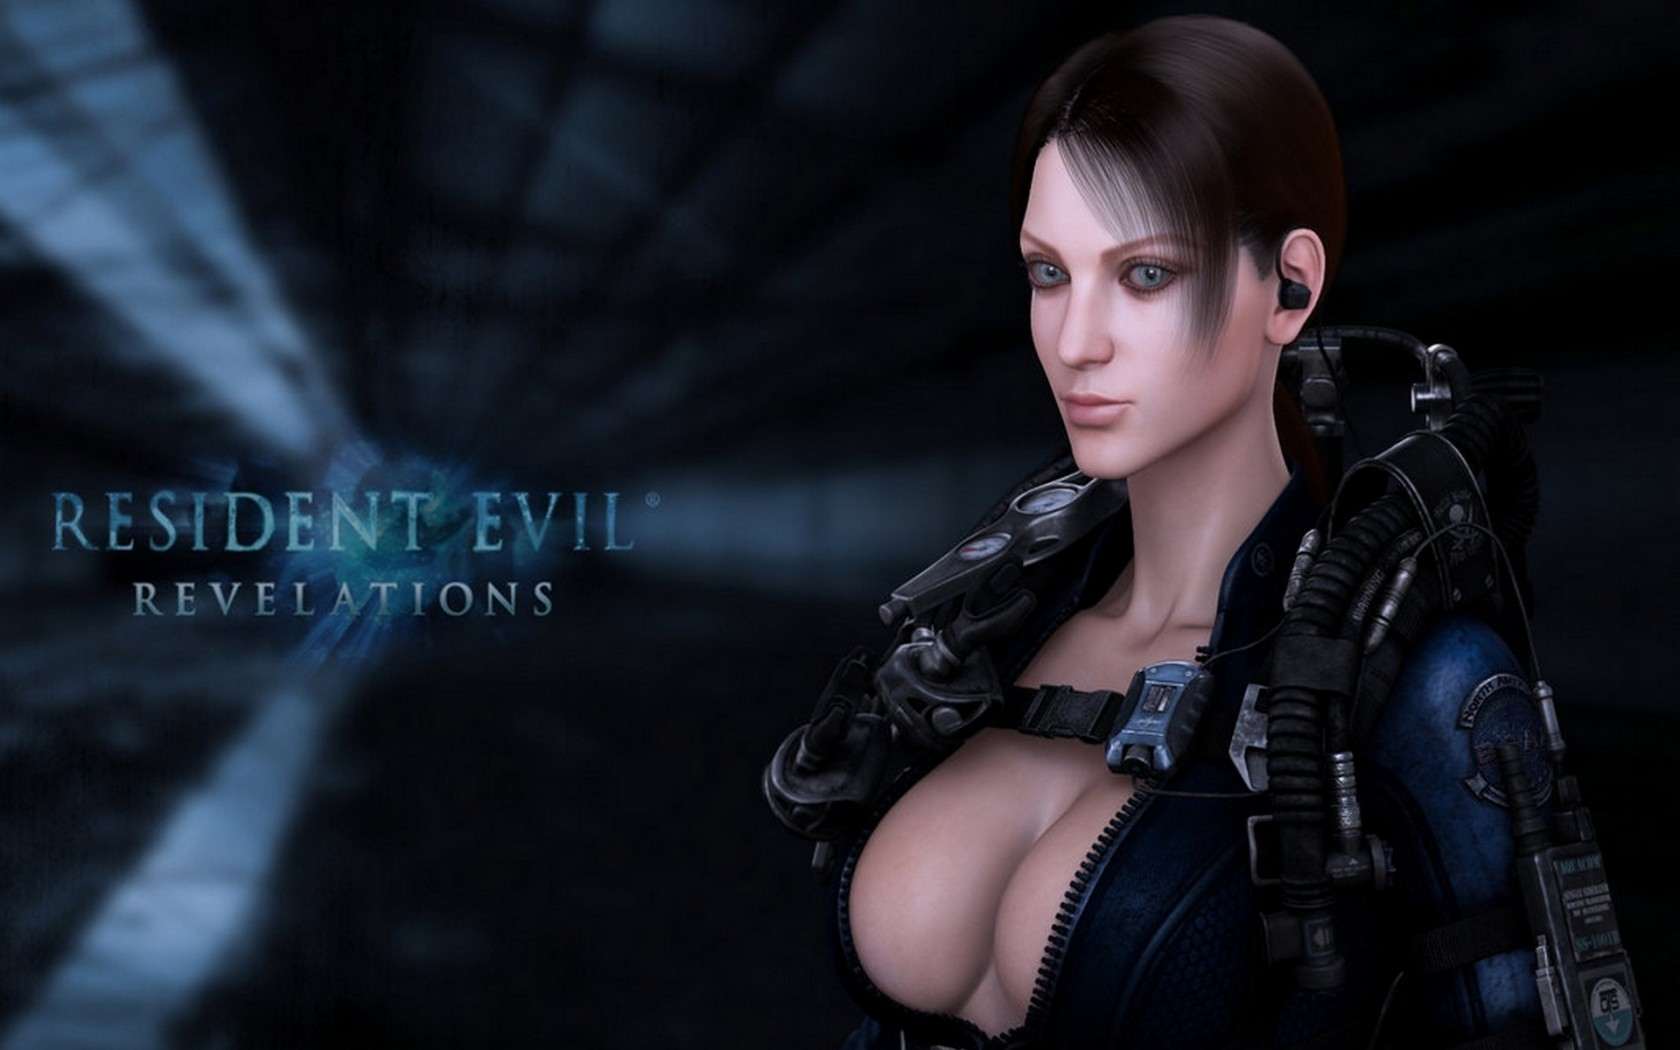 Ashly resident evil 4 xxx hentia photo